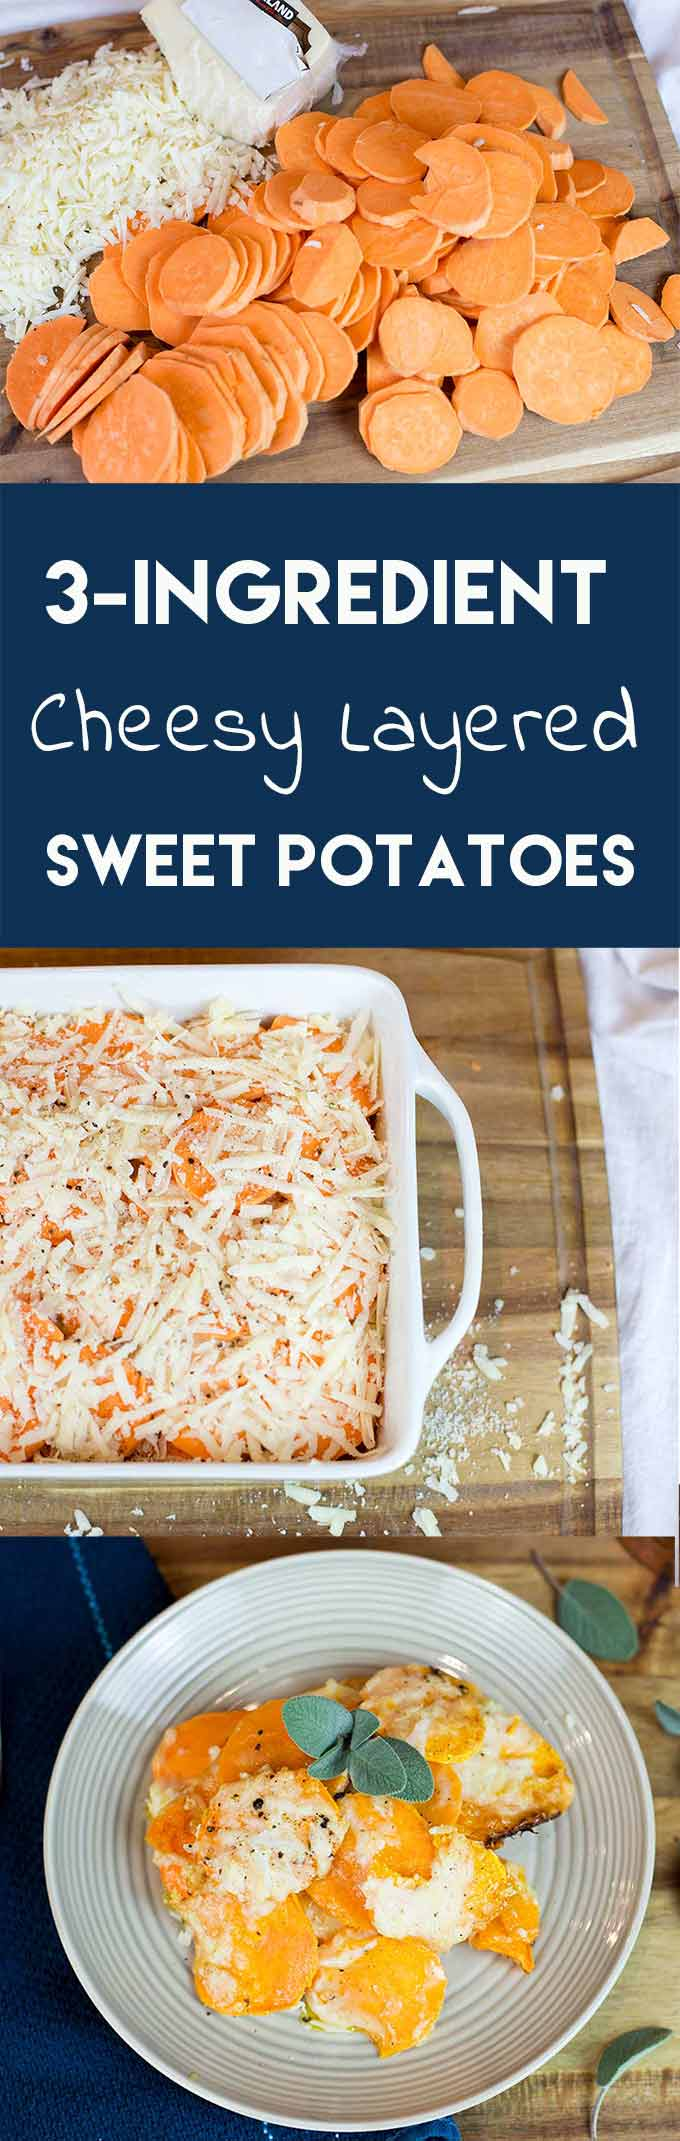 3-Ingredient Cheesy Layered Sweet Potatoes combine sweet potatoes, Pecorino cheese, melted butter and nutmeg in a simple but deliciously savory side dish!